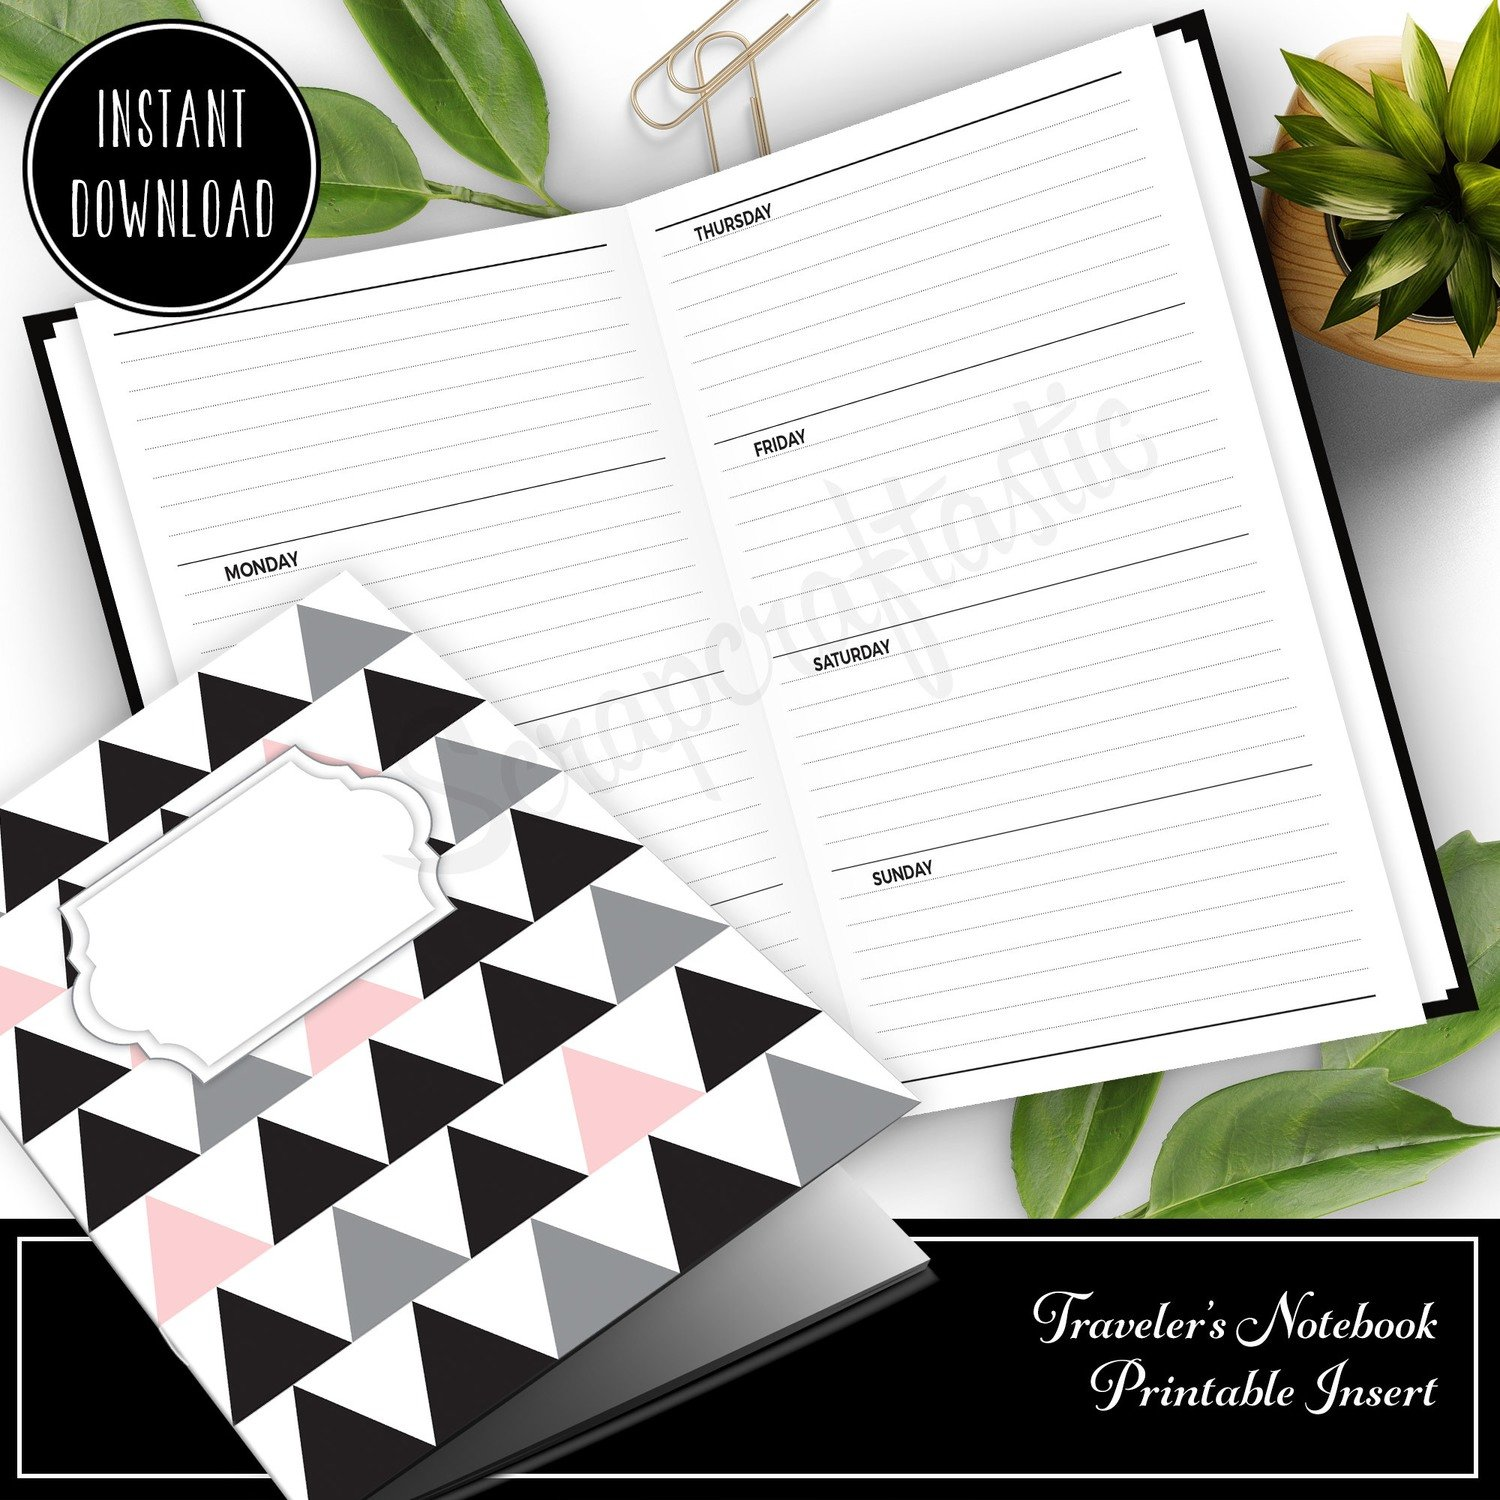 STANDARD TN - Horizontal Lined Undated Weekly Traveler's Notebook Printable Planner Insert